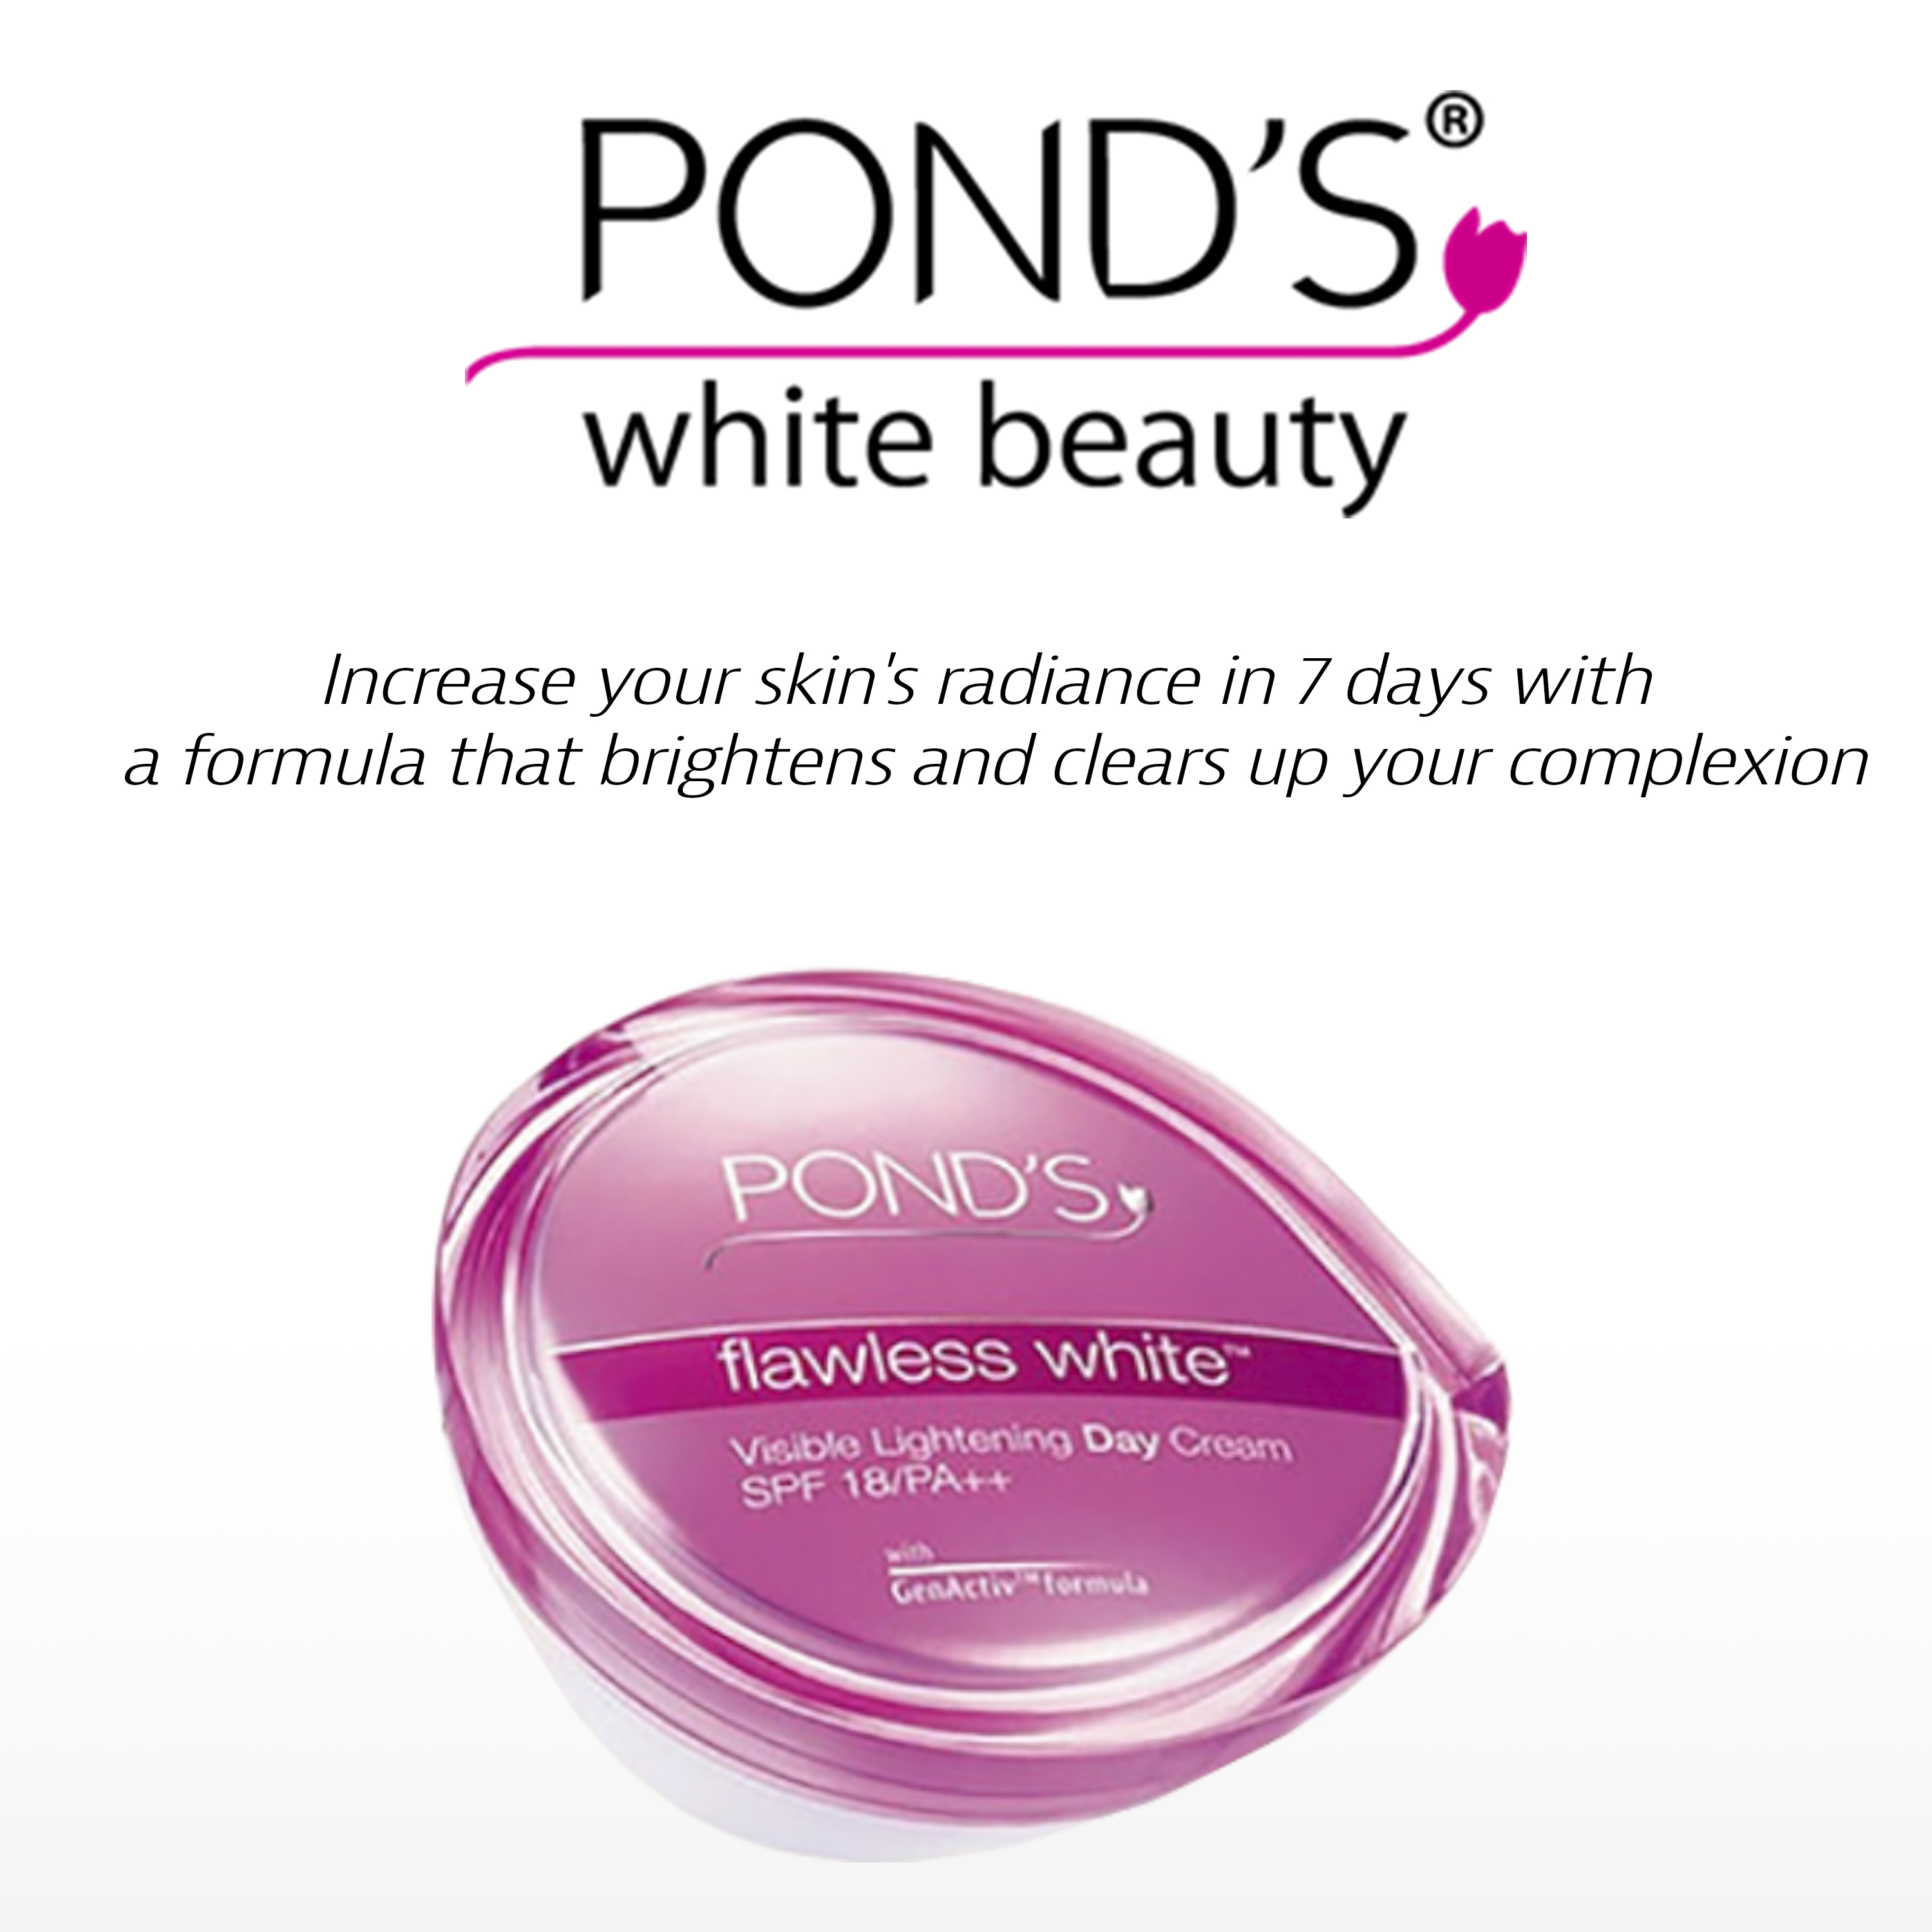 Ponds Flawless White Whitening Day Cream Package New Authentic